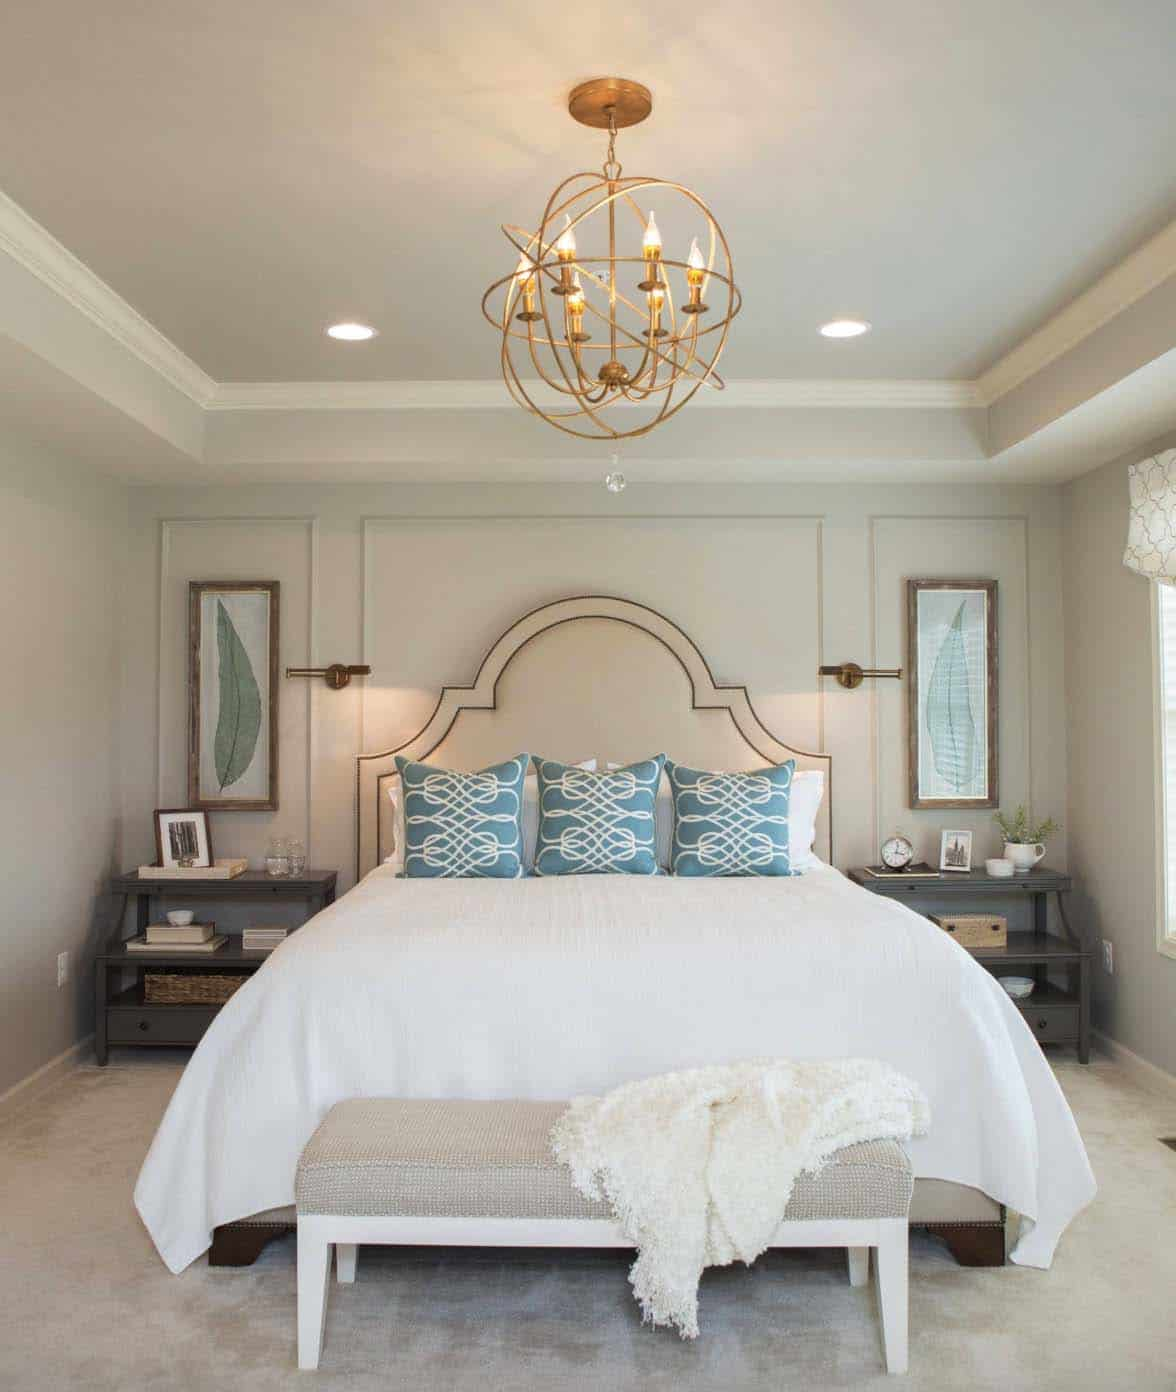 Bedroom Decorating Ideas: 20+ Serene And Elegant Master Bedroom Decorating Ideas